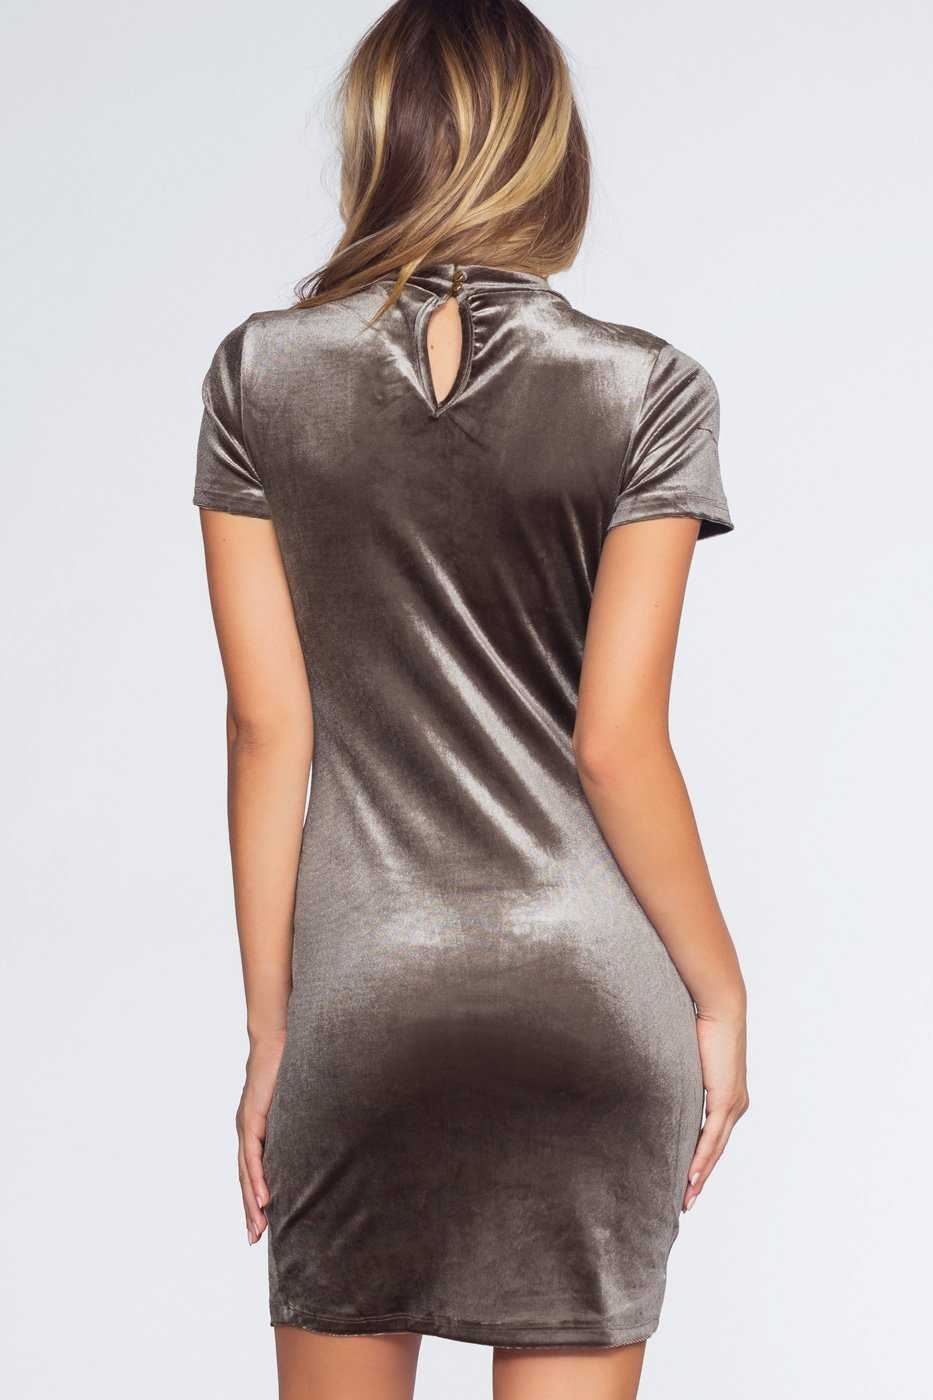 Dresses - Your Desire Dress - Silver